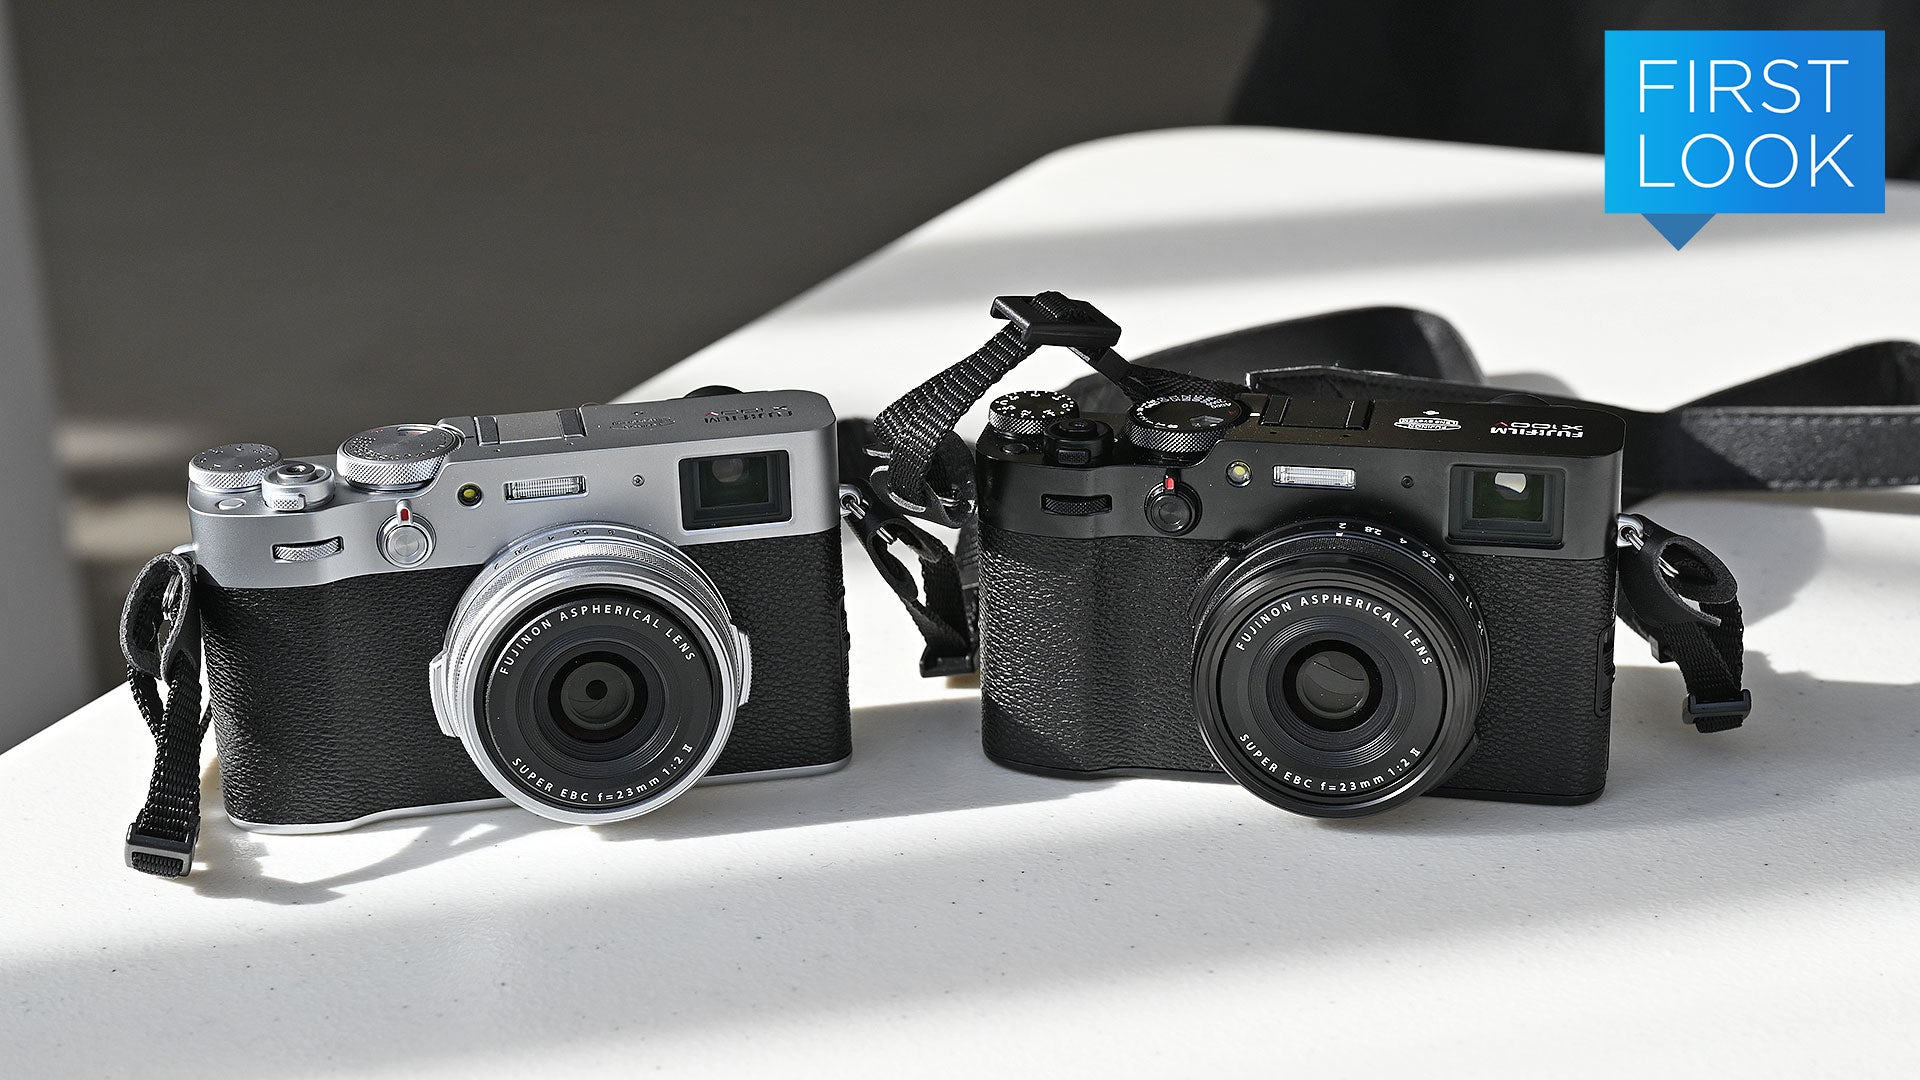 Fujifilm's New X100V Could Make A Great Everyday Travel Camera